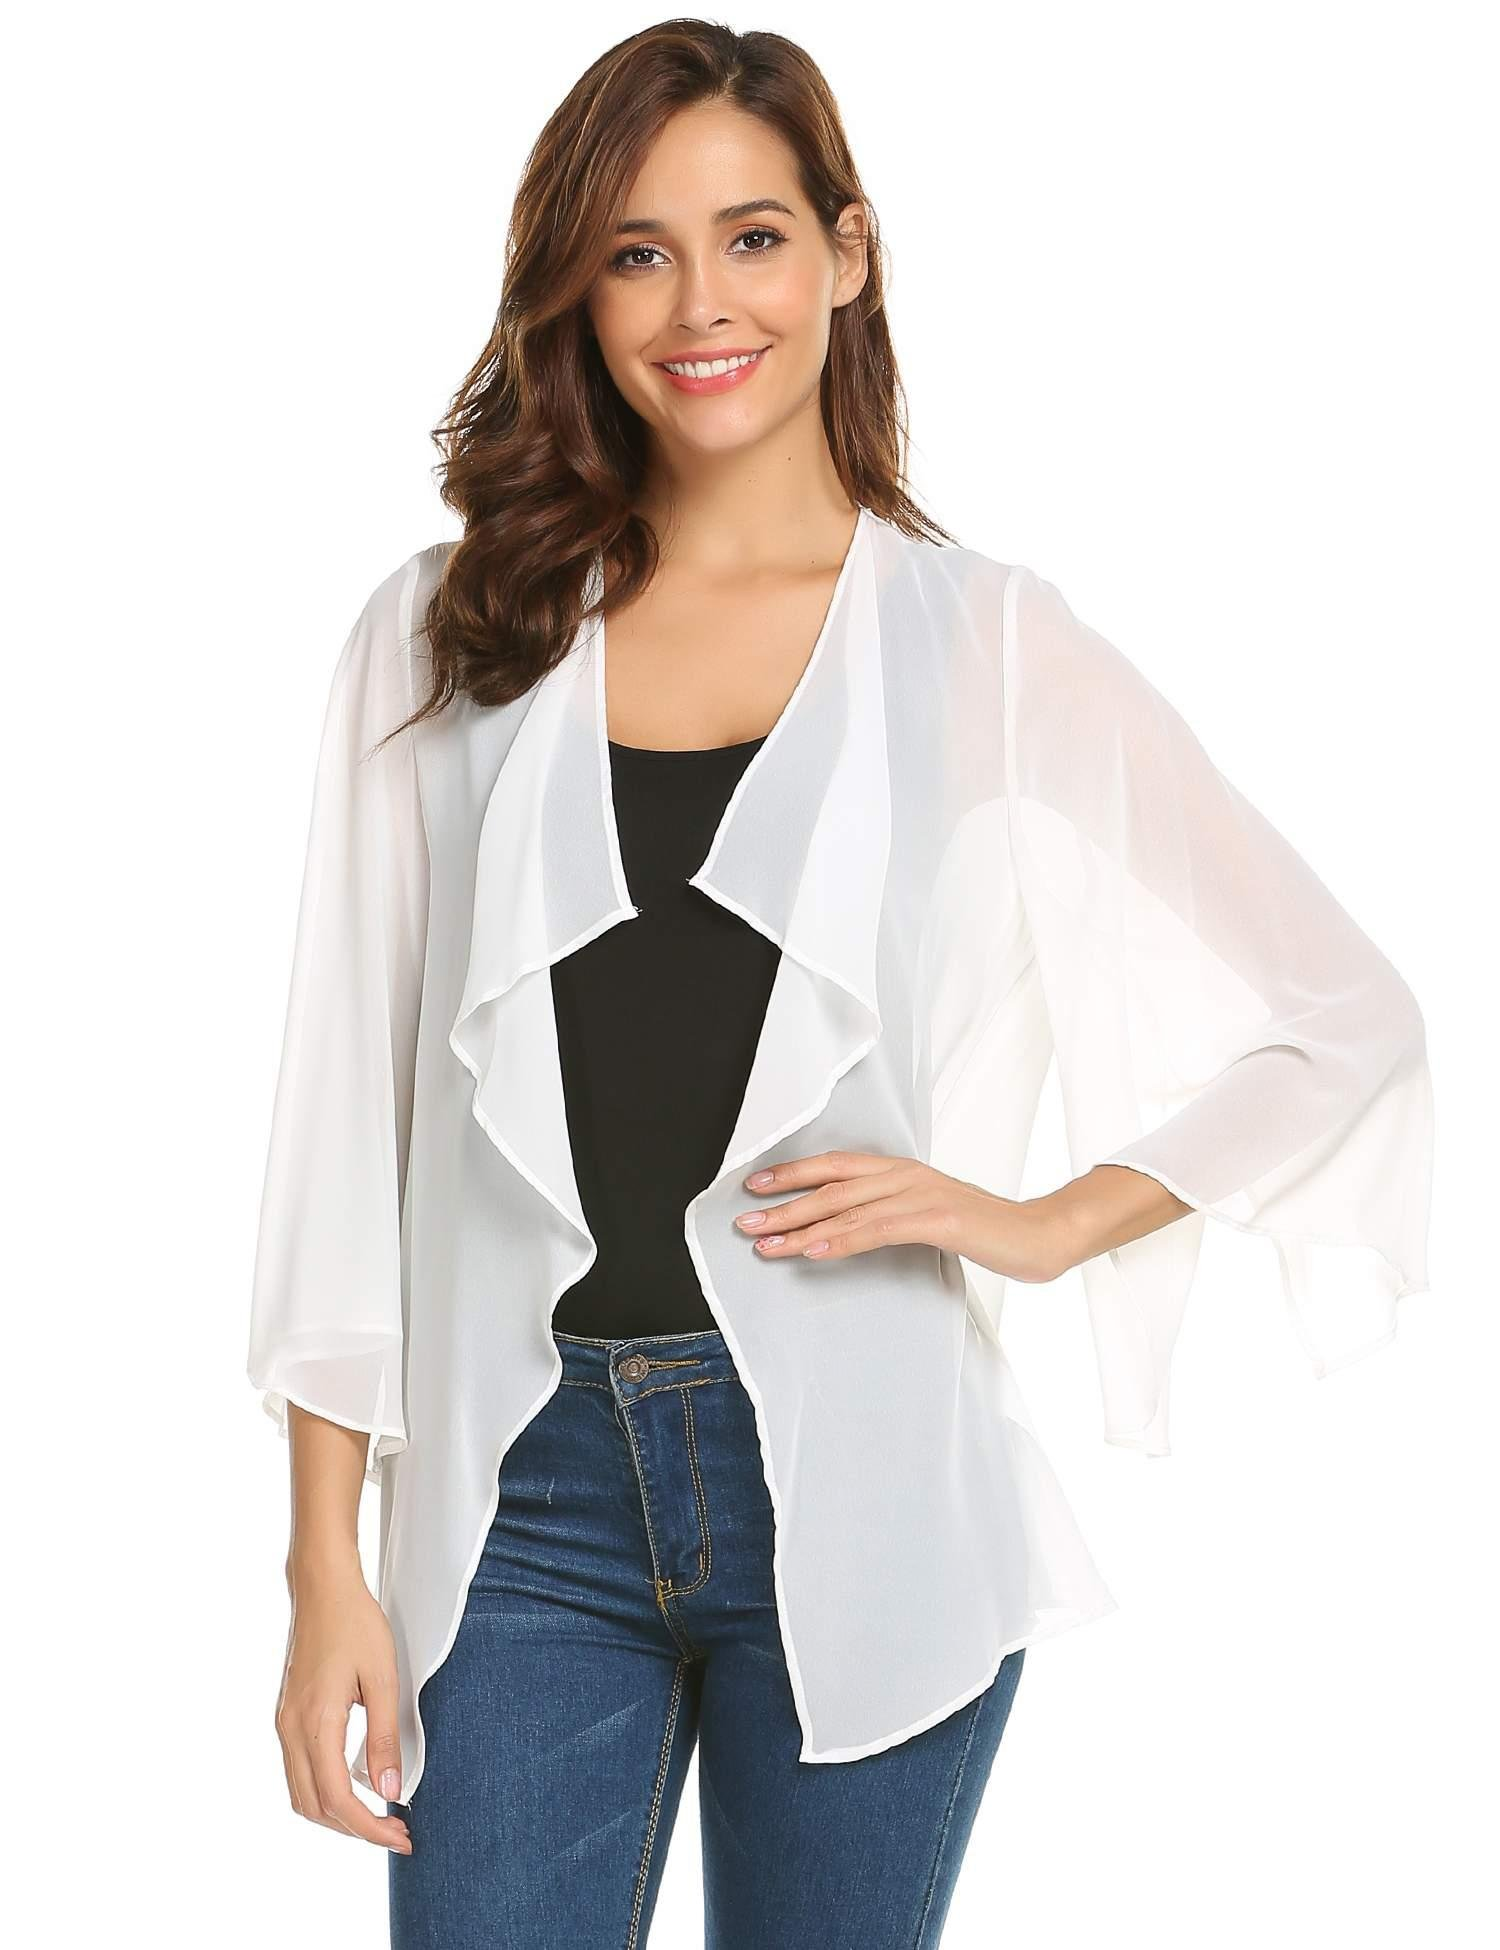 Pinspark Women's Sheer Bolero Shrug Shawl Chiffon Thin Cardigan (M, Pure White1)